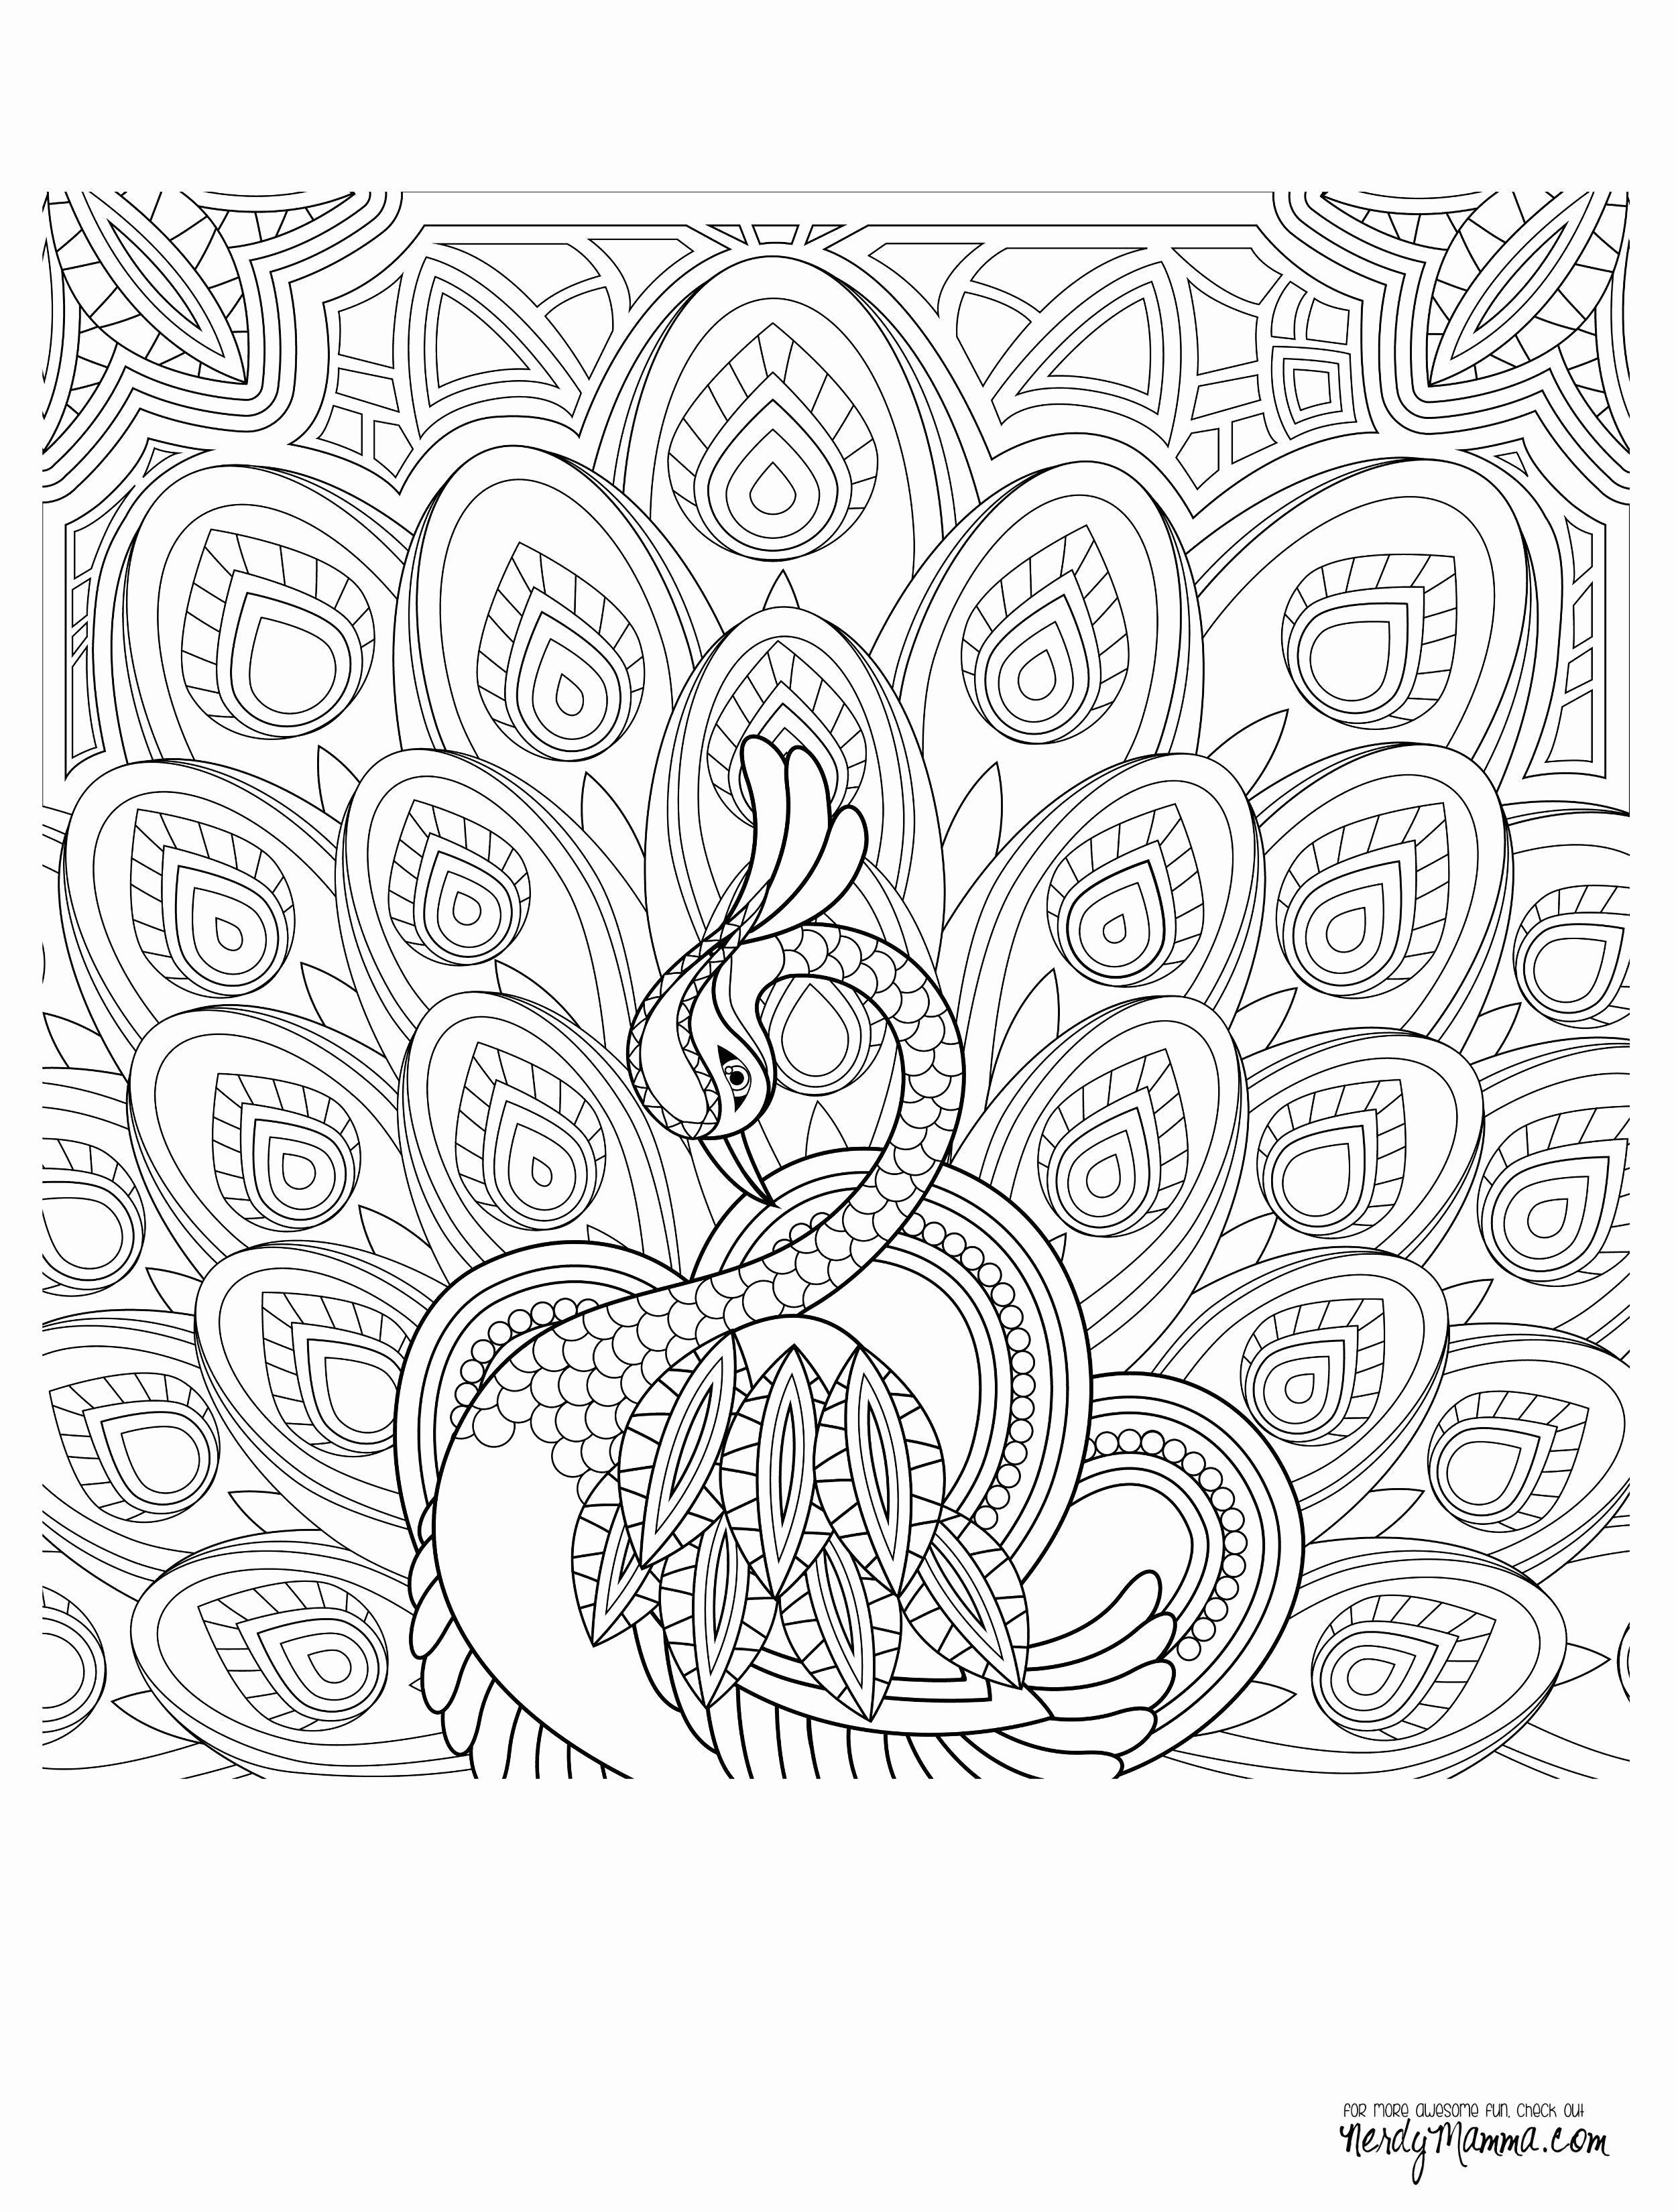 Free Disney Printable Coloring Pages Fresh Inspirational Advanced Fairy Coloring Pages Traspo Love Coloring Pages Mandala Coloring Pages Heart Coloring Pages